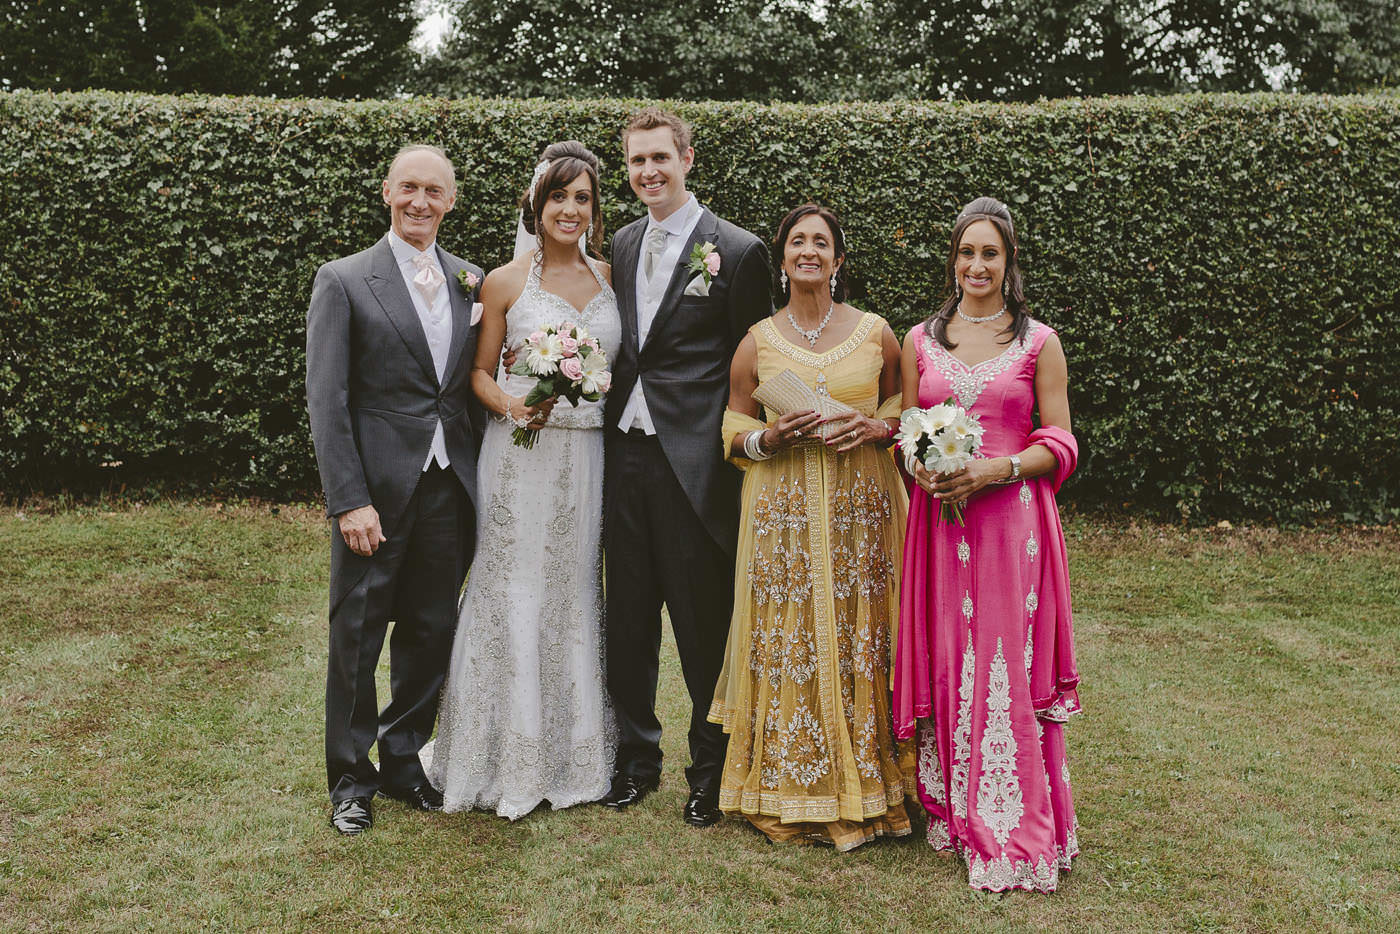 chrisangela virginia water wedding photographer 0072